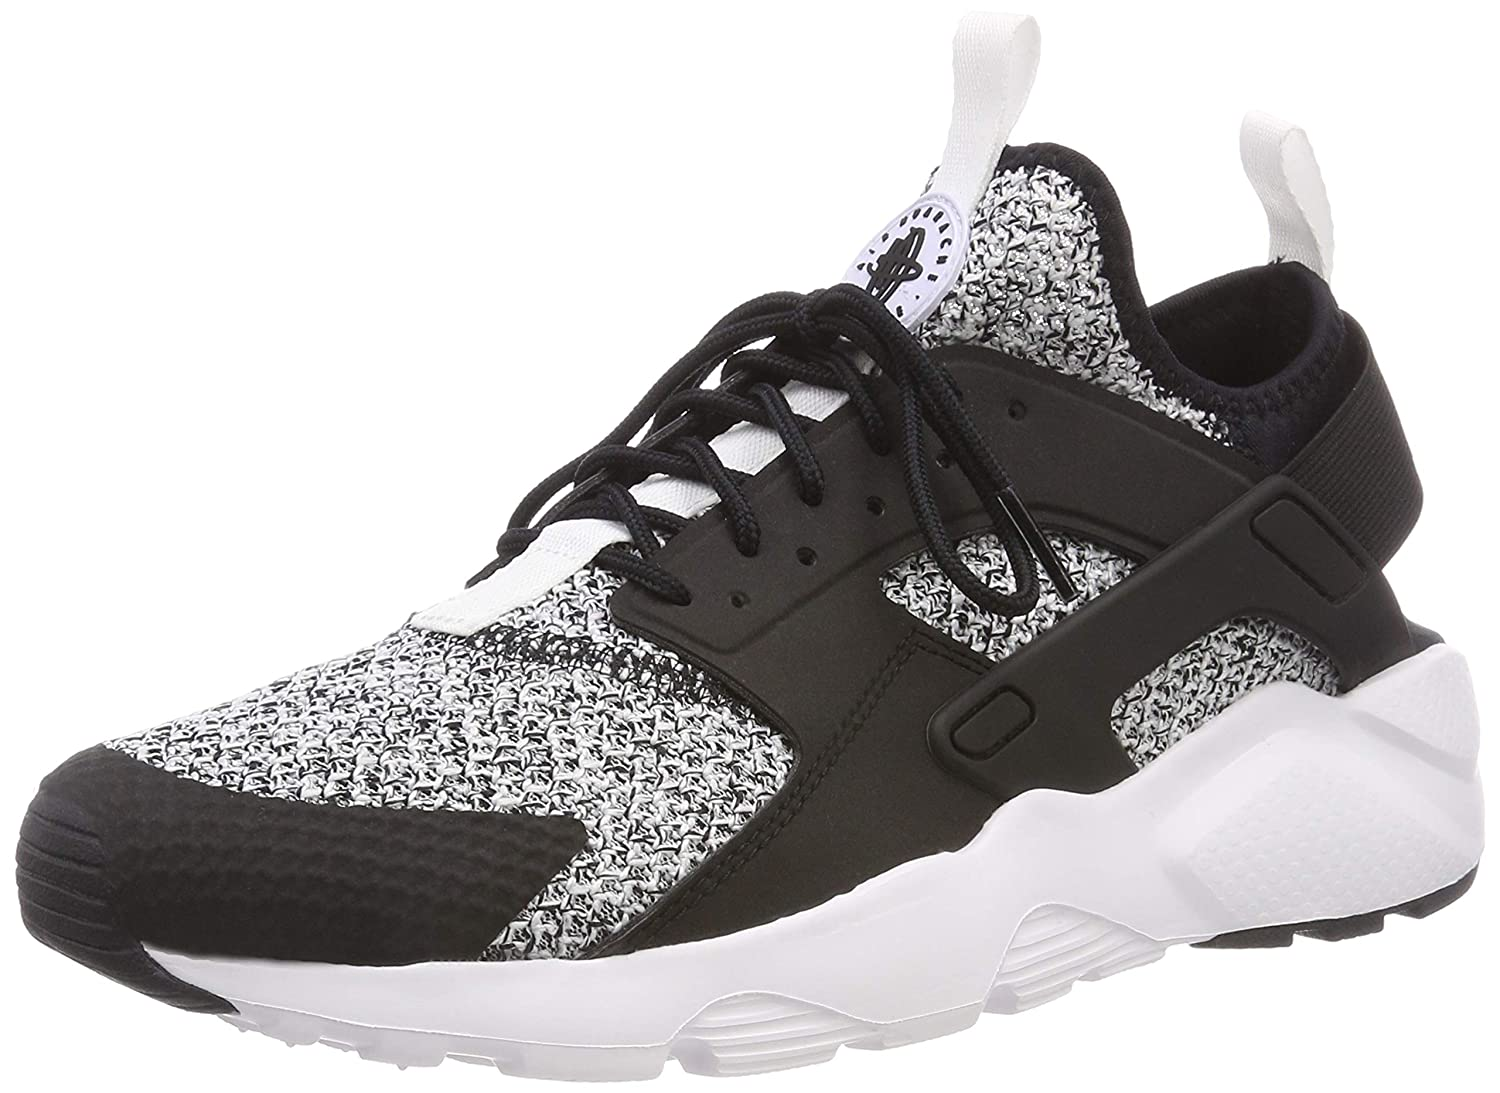 92ed22d99cc2 Nike Men s Air Huarache Run Ultra Se Gymnastics Shoes  Amazon.co.uk  Shoes    Bags